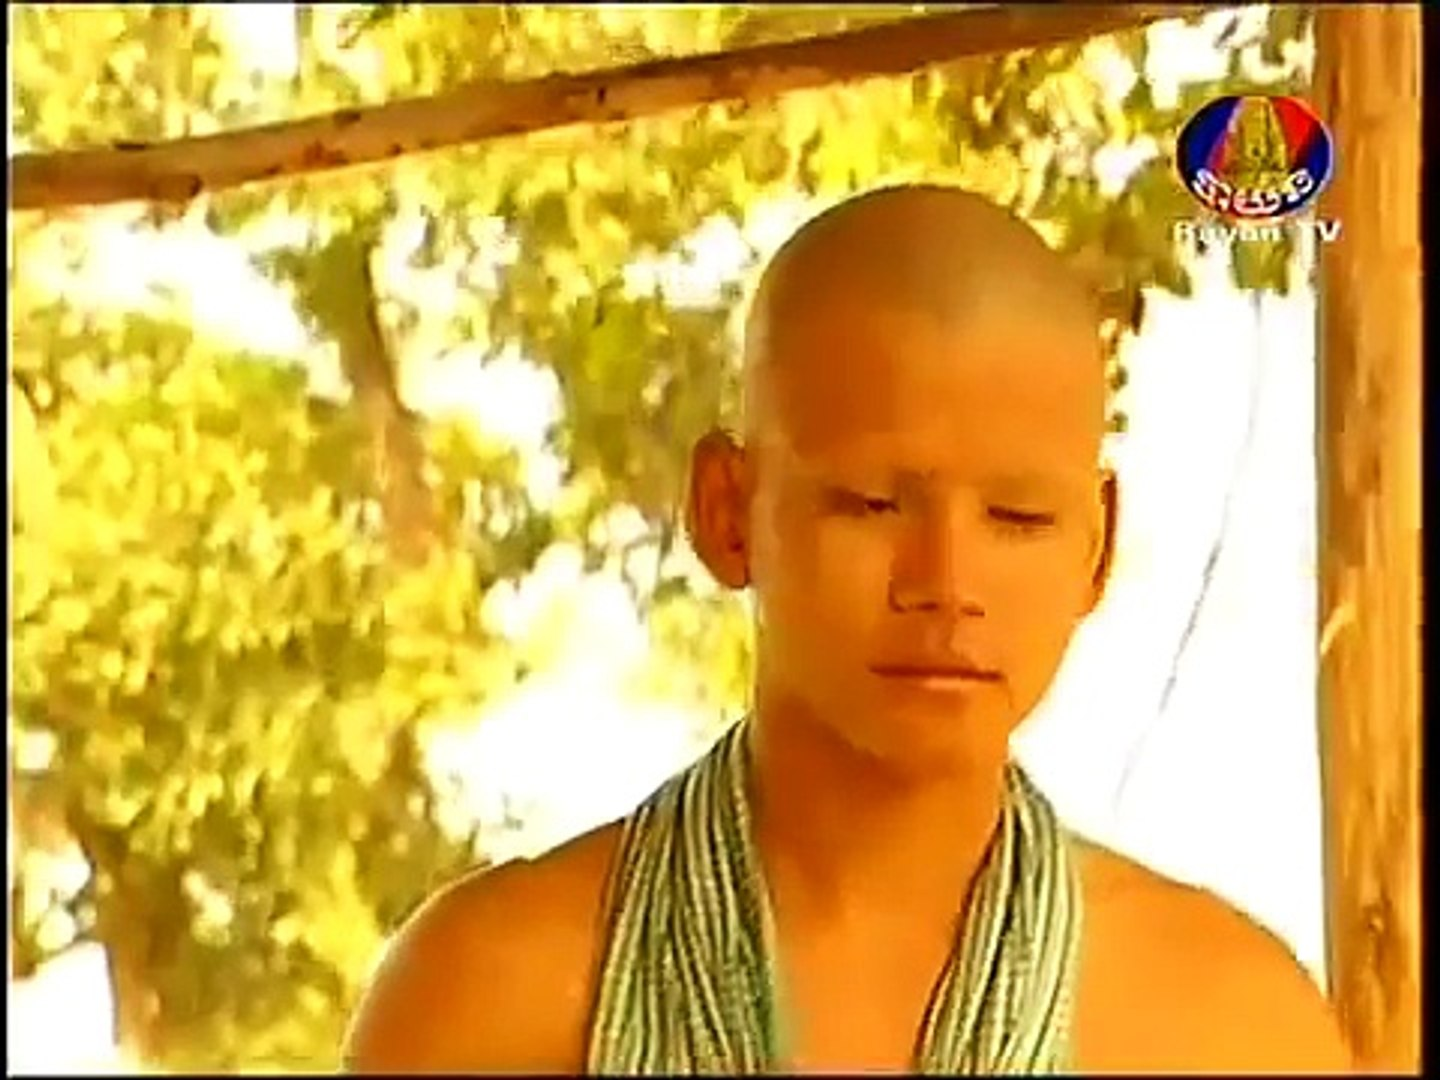 Khmer movie comedy 2015,A Lev Ep 05 - អាឡេវ,Khmer Movie Ah Lev (English Subtitles) News Khmer movie